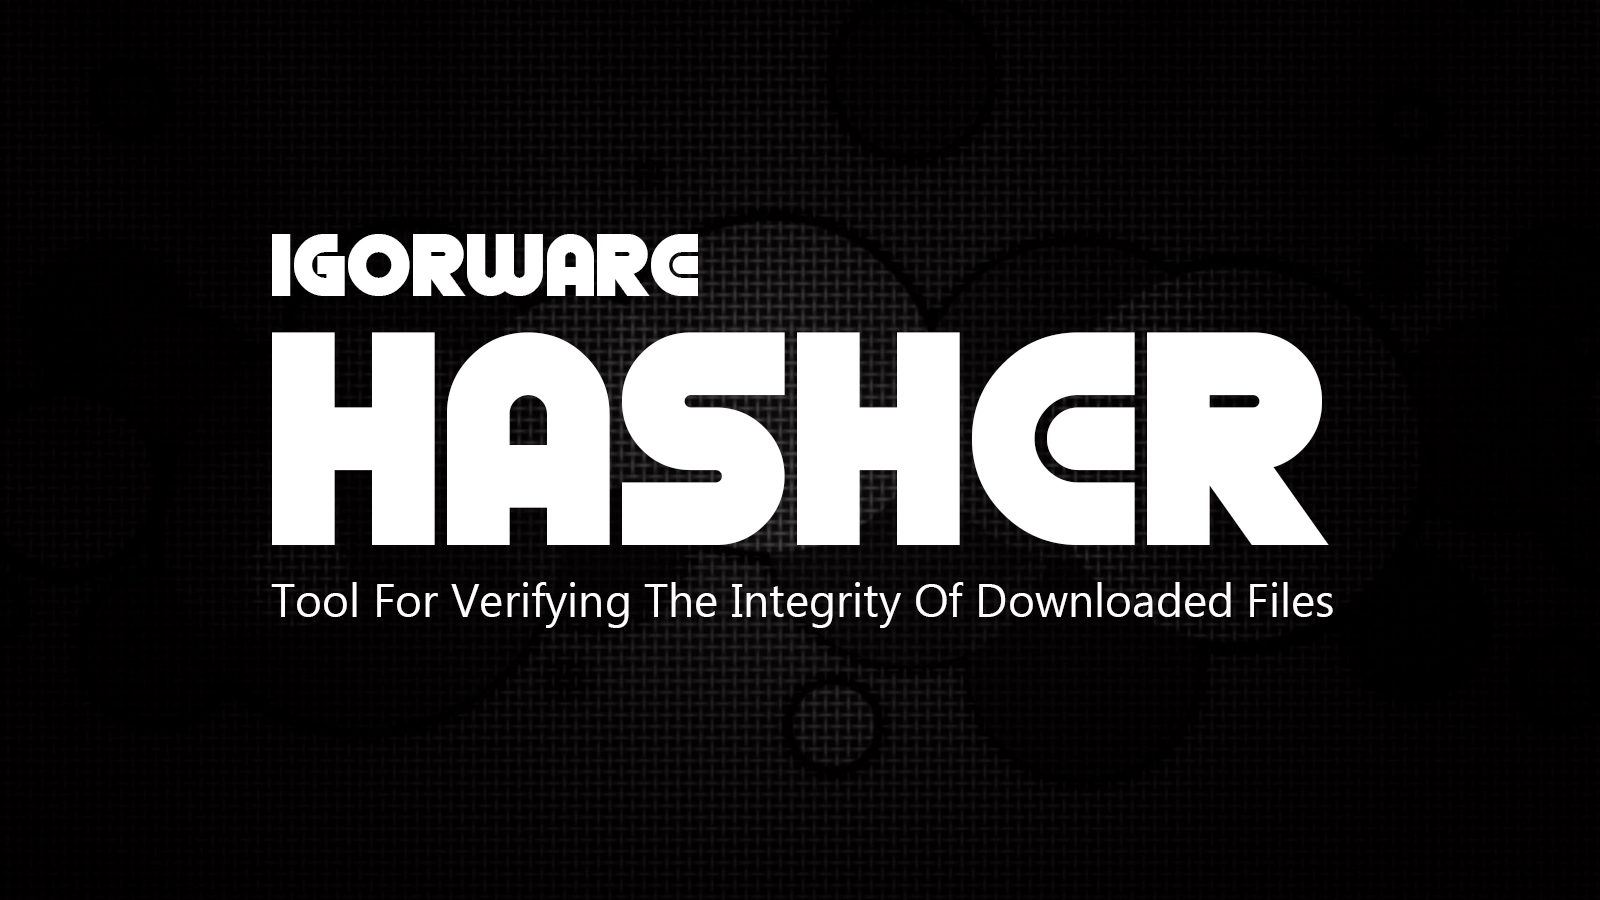 IgorWare Hasher - Tool For Verifying The Integrity Of Downloaded Files